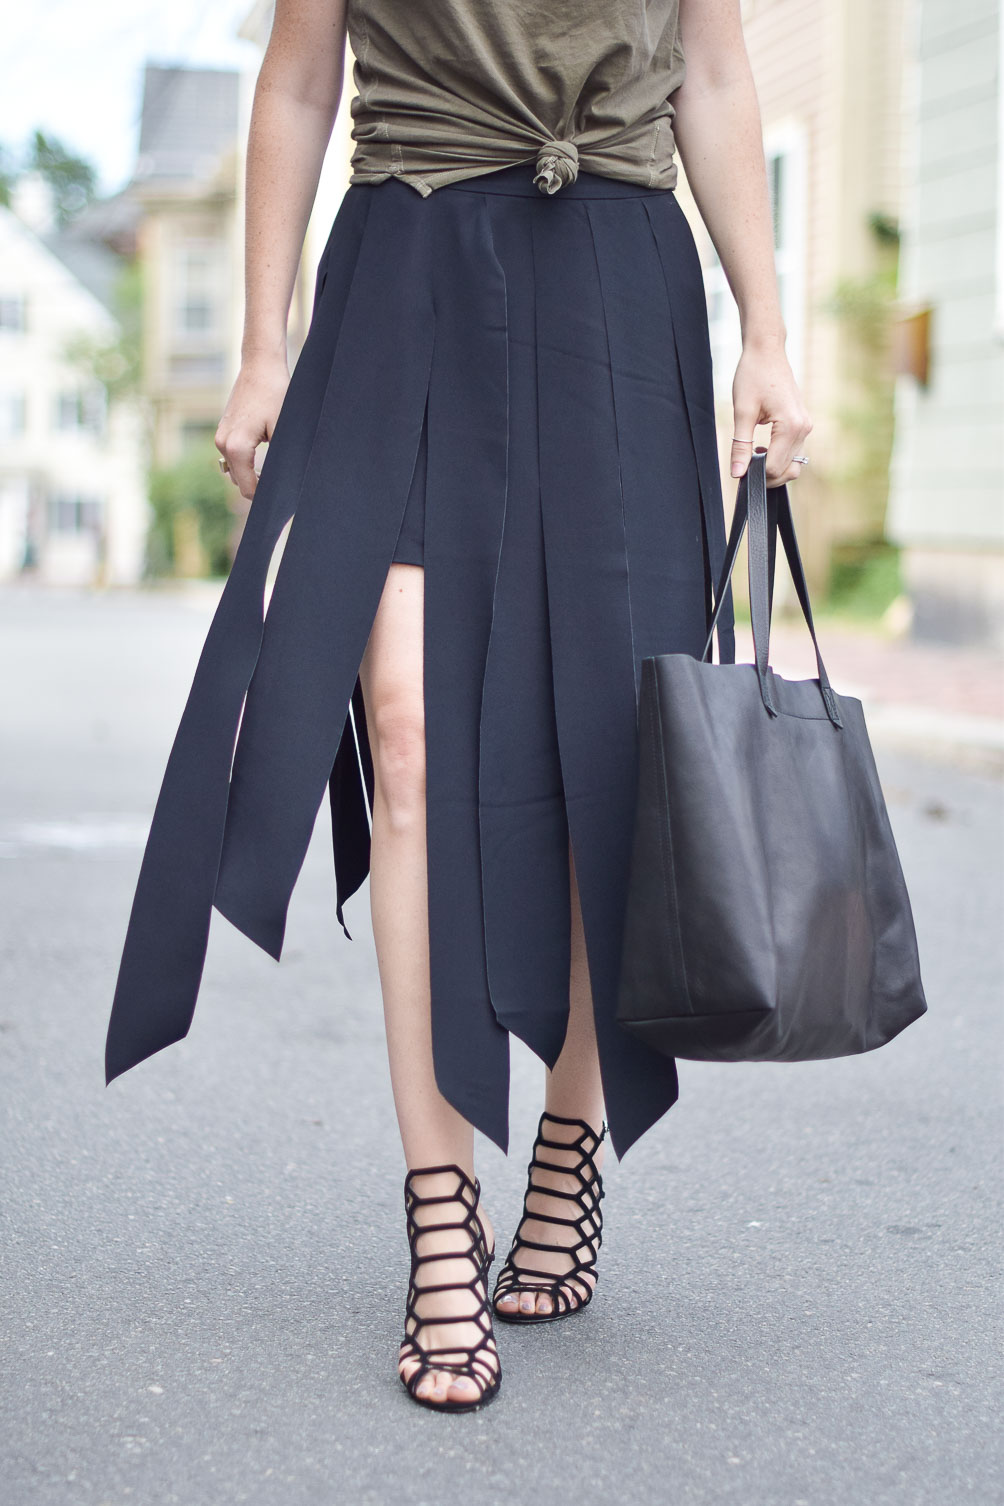 Trouve carwash midi skirt, Madewell tote, Express cage sandals on one brass fox